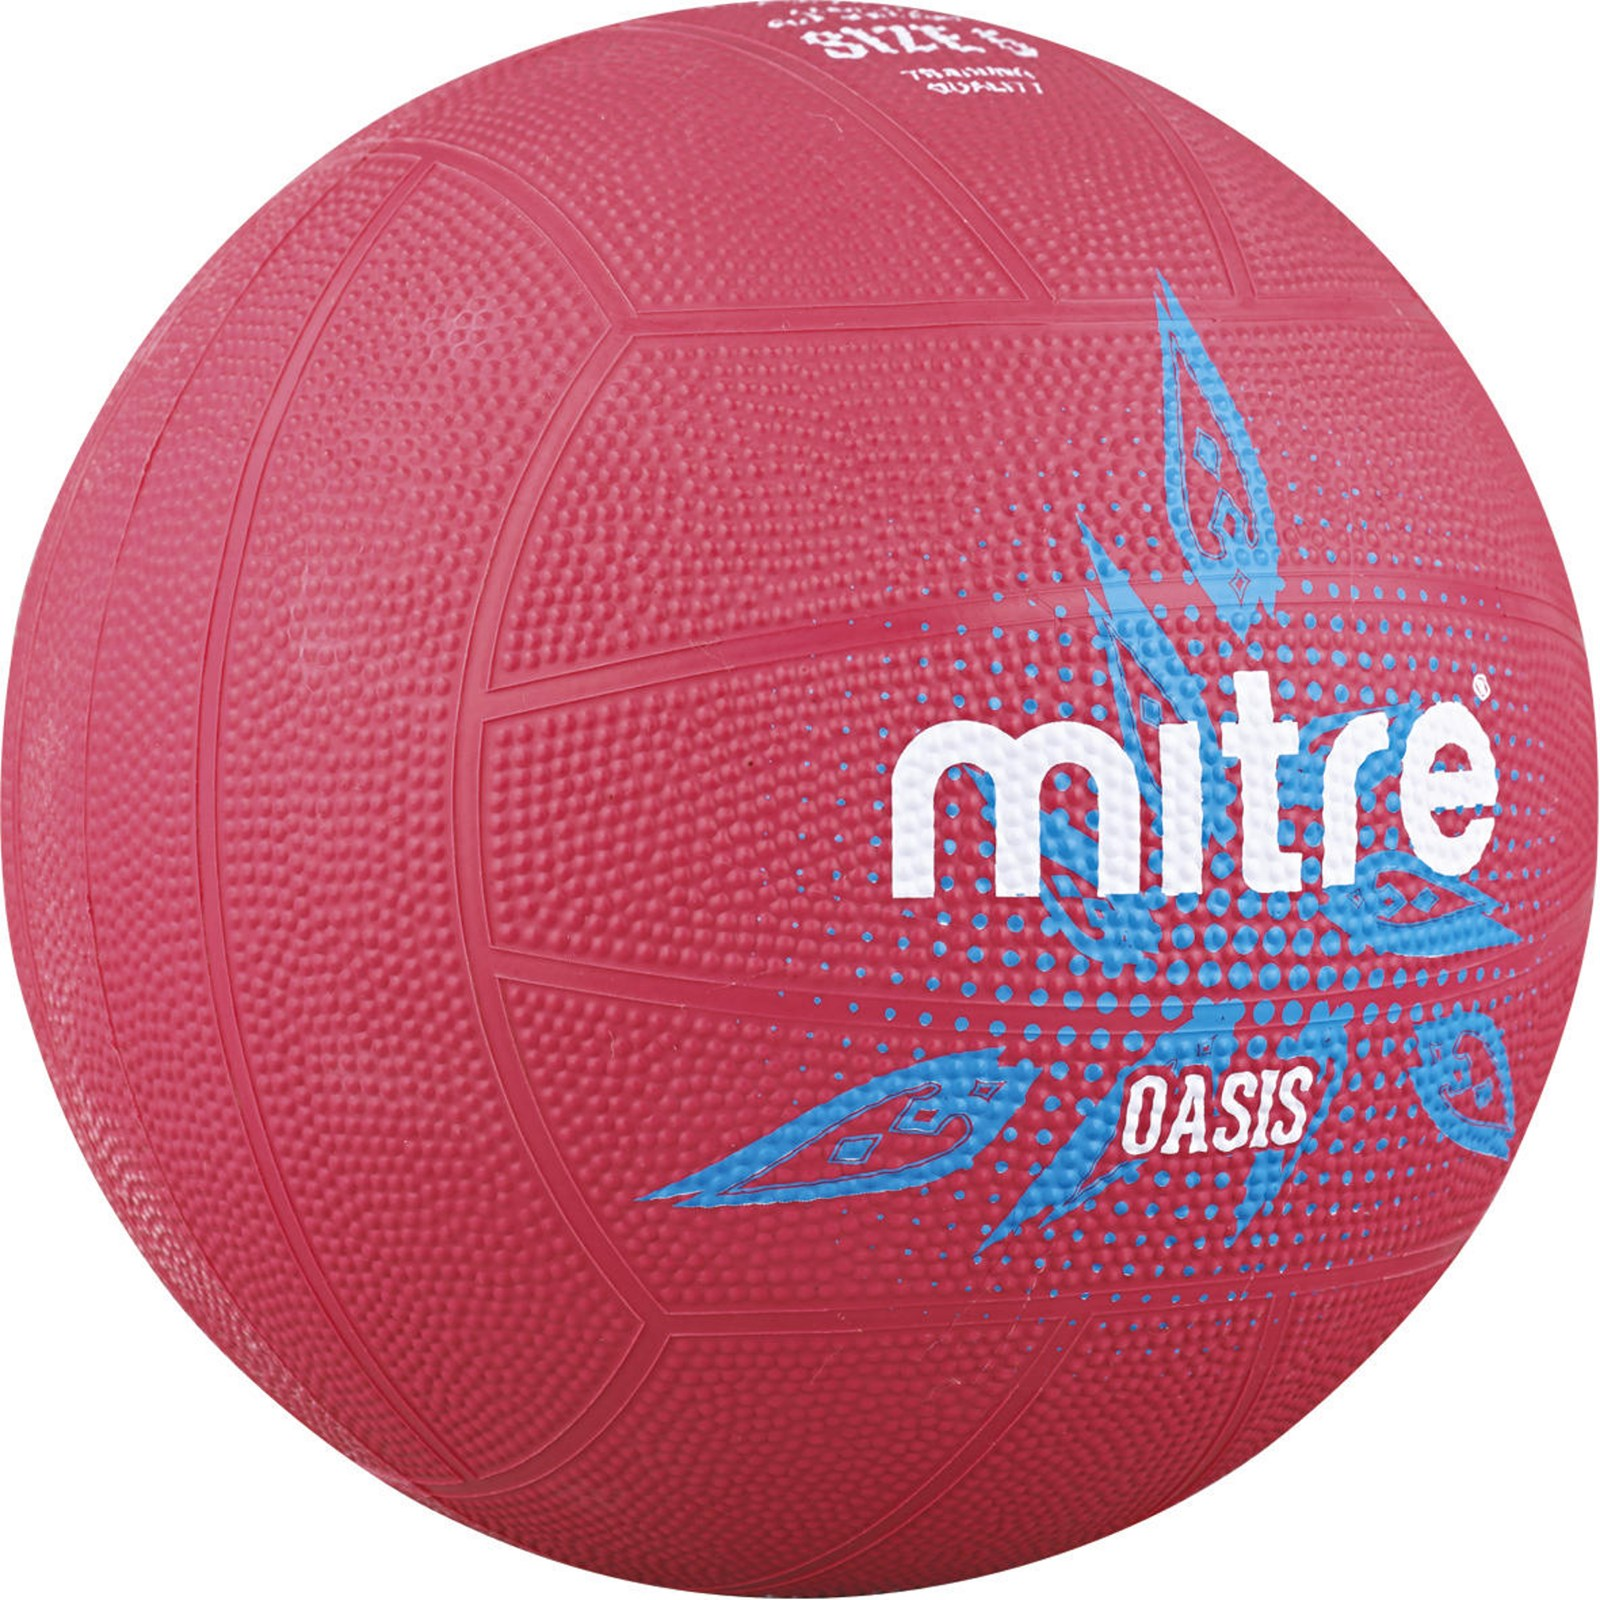 Mitre Oasis Netball - Size 4 - Pink